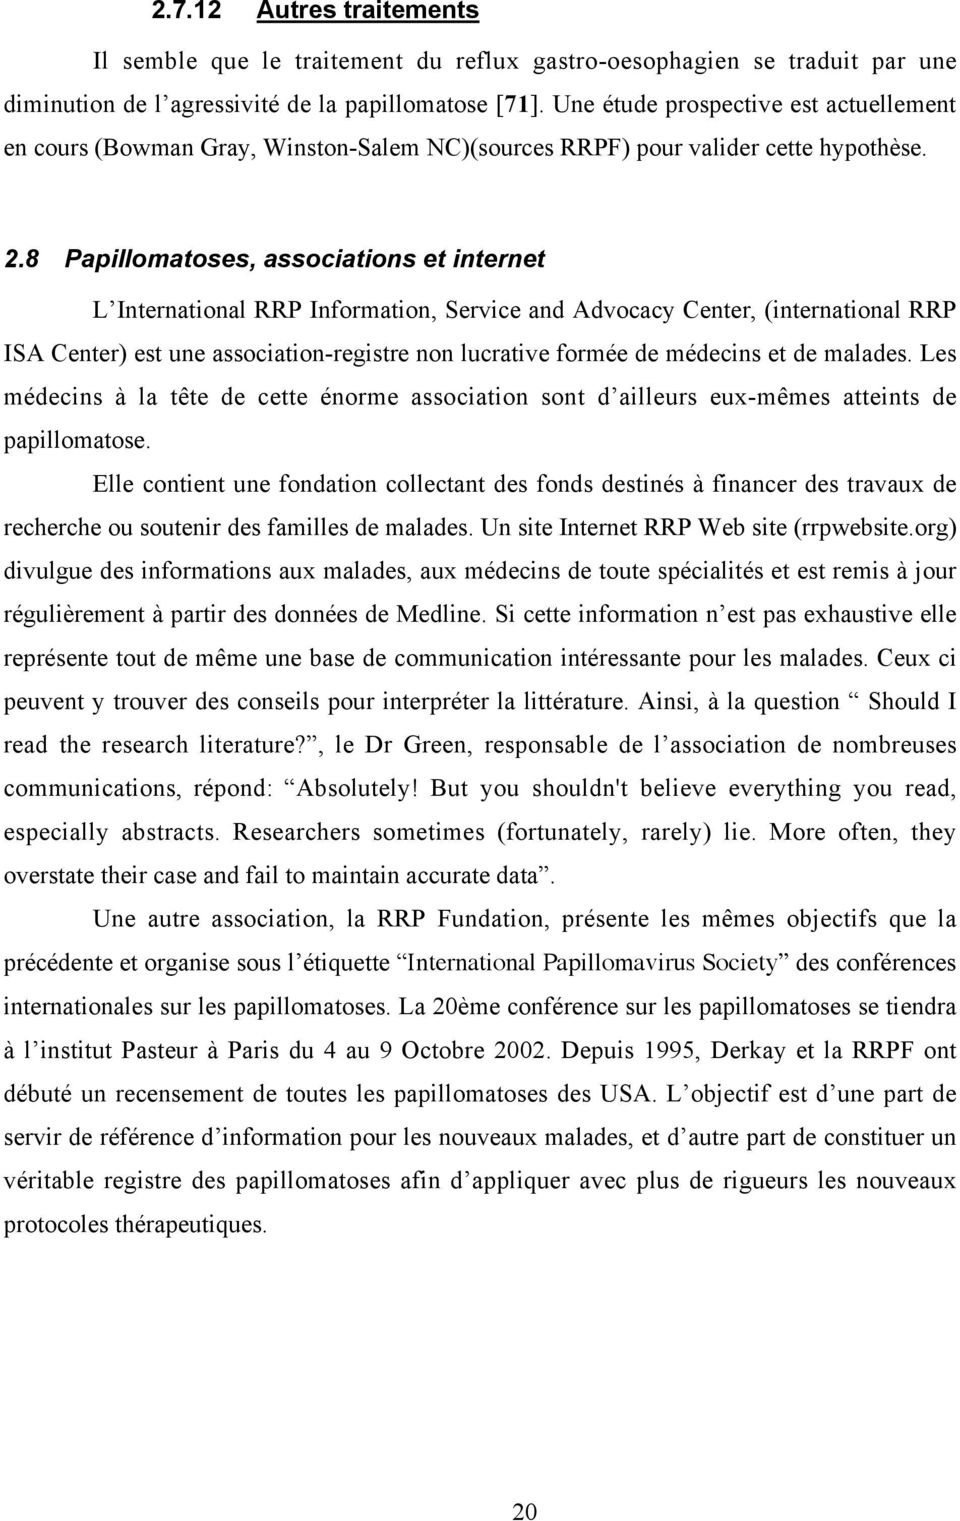 8 Papillomatoses, associations et internet L International RRP Information, Service and Advocacy Center, (international RRP ISA Center) est une association-registre non lucrative formée de médecins